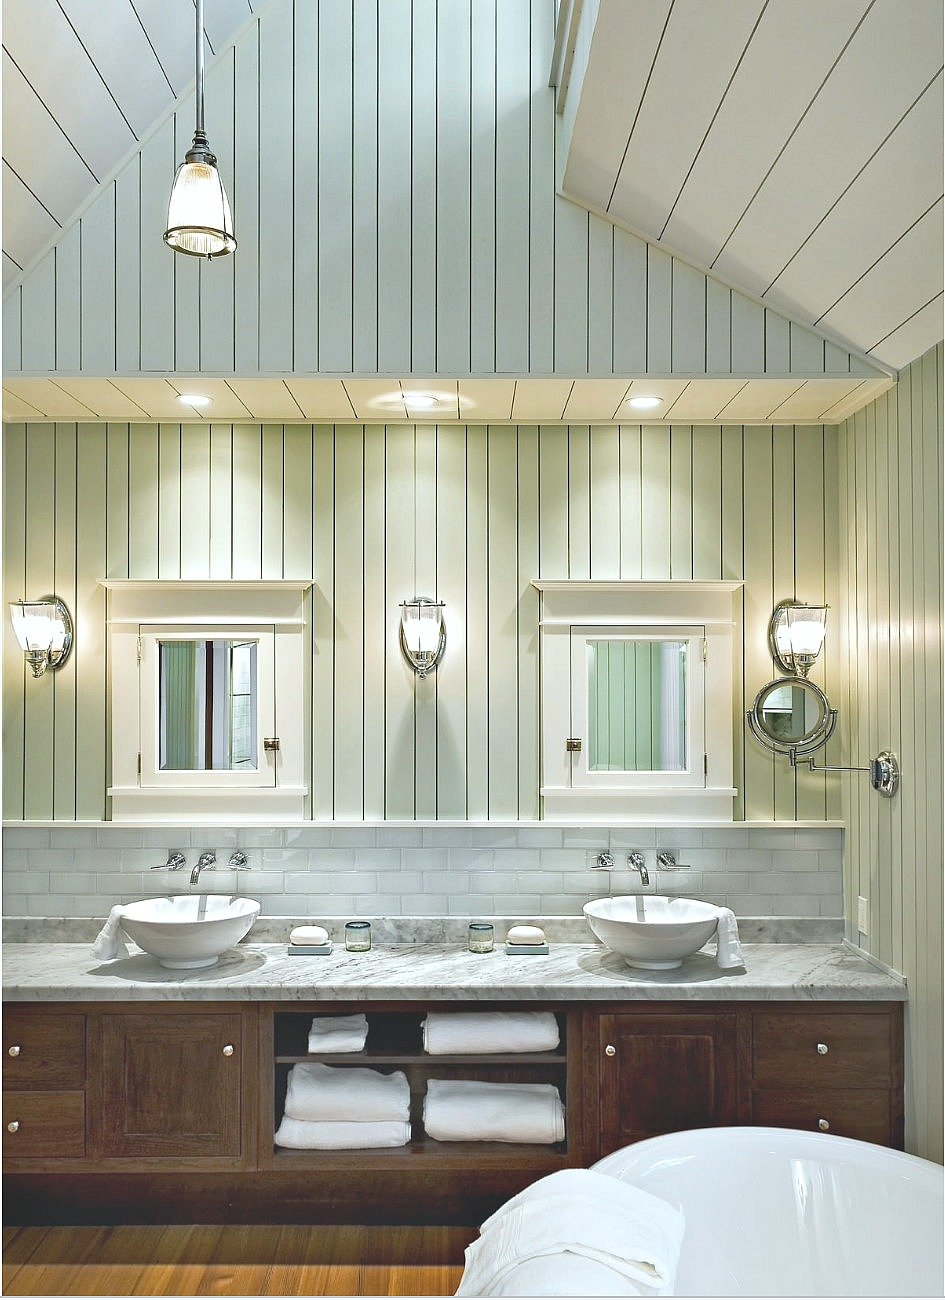 Wall color is Sherwin Williams Sea Salt